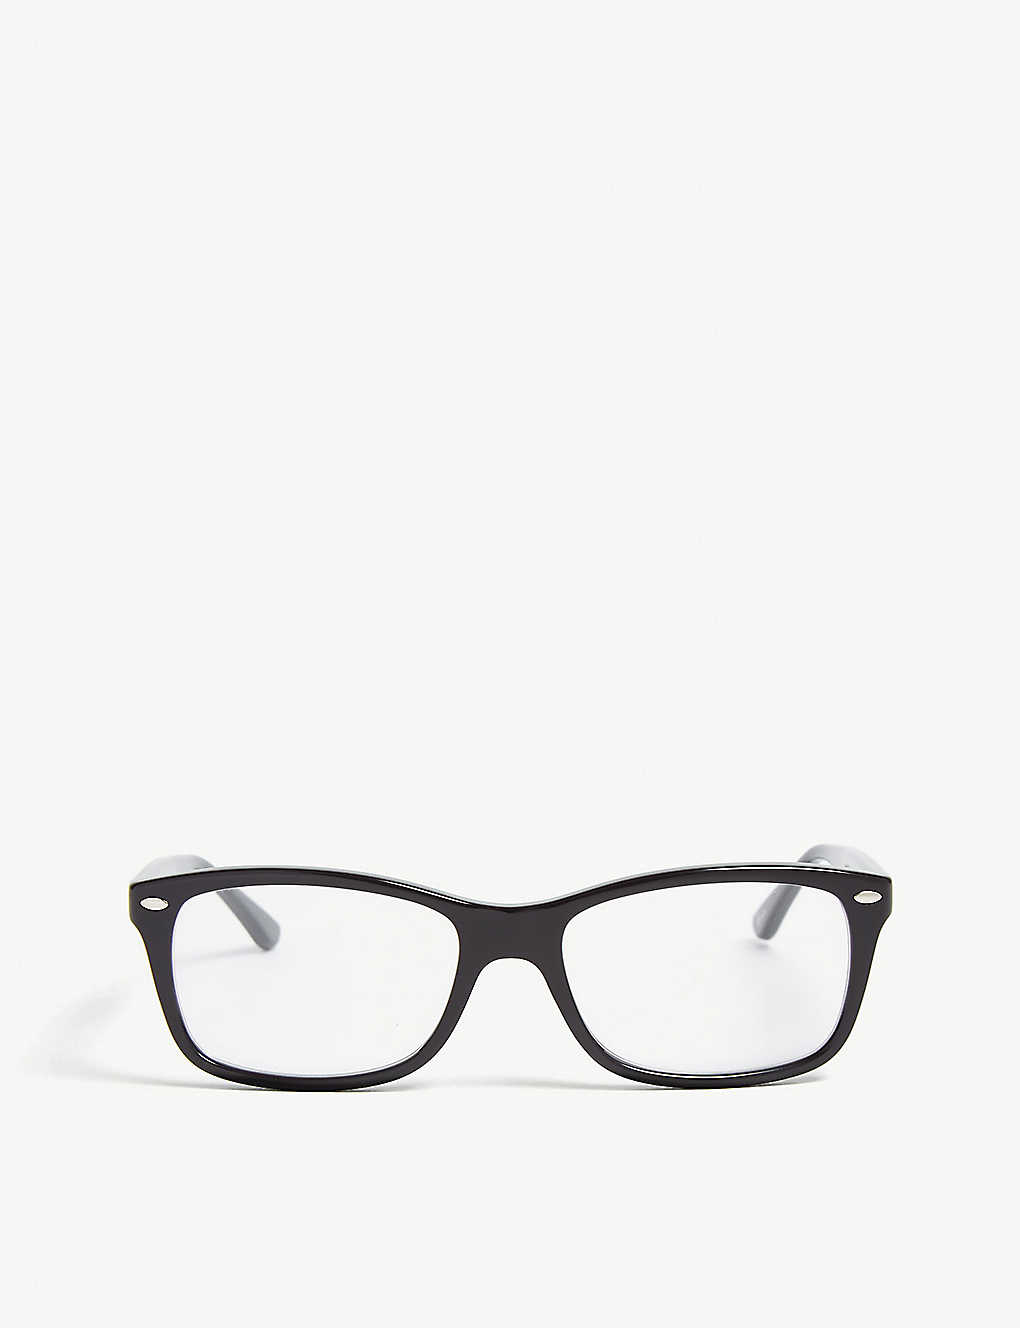 1642658c829a6 RB5228 square-frame glasses - Black ...